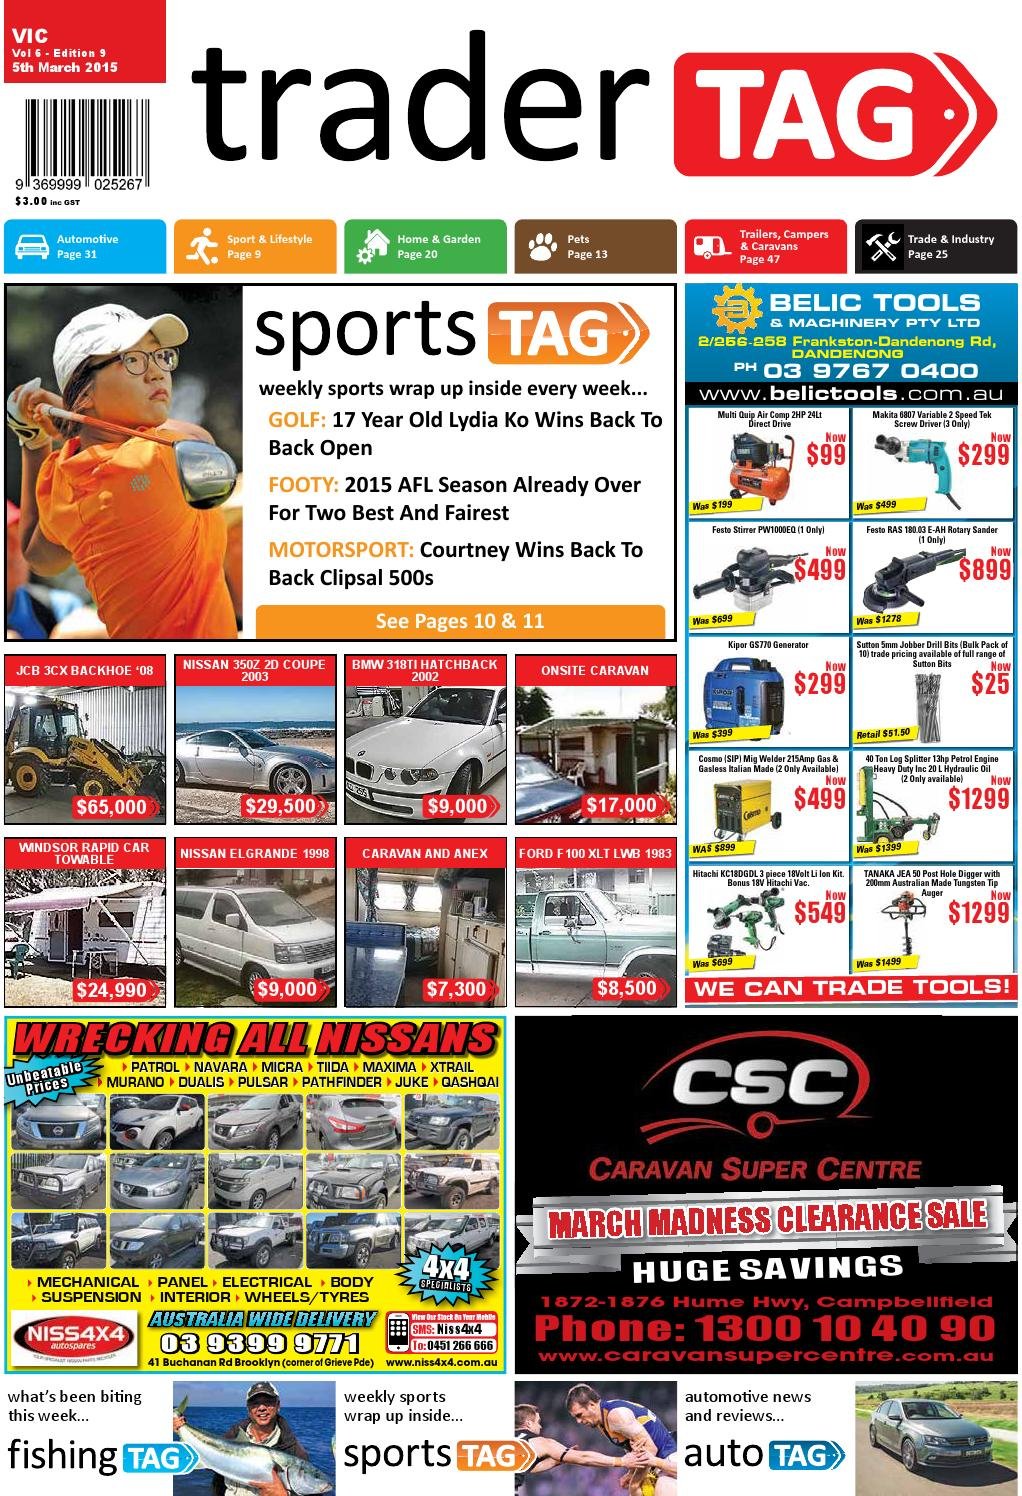 e285da1be TraderTAG Victoria - Edition 9 - 2015 by TraderTAG Design - issuu